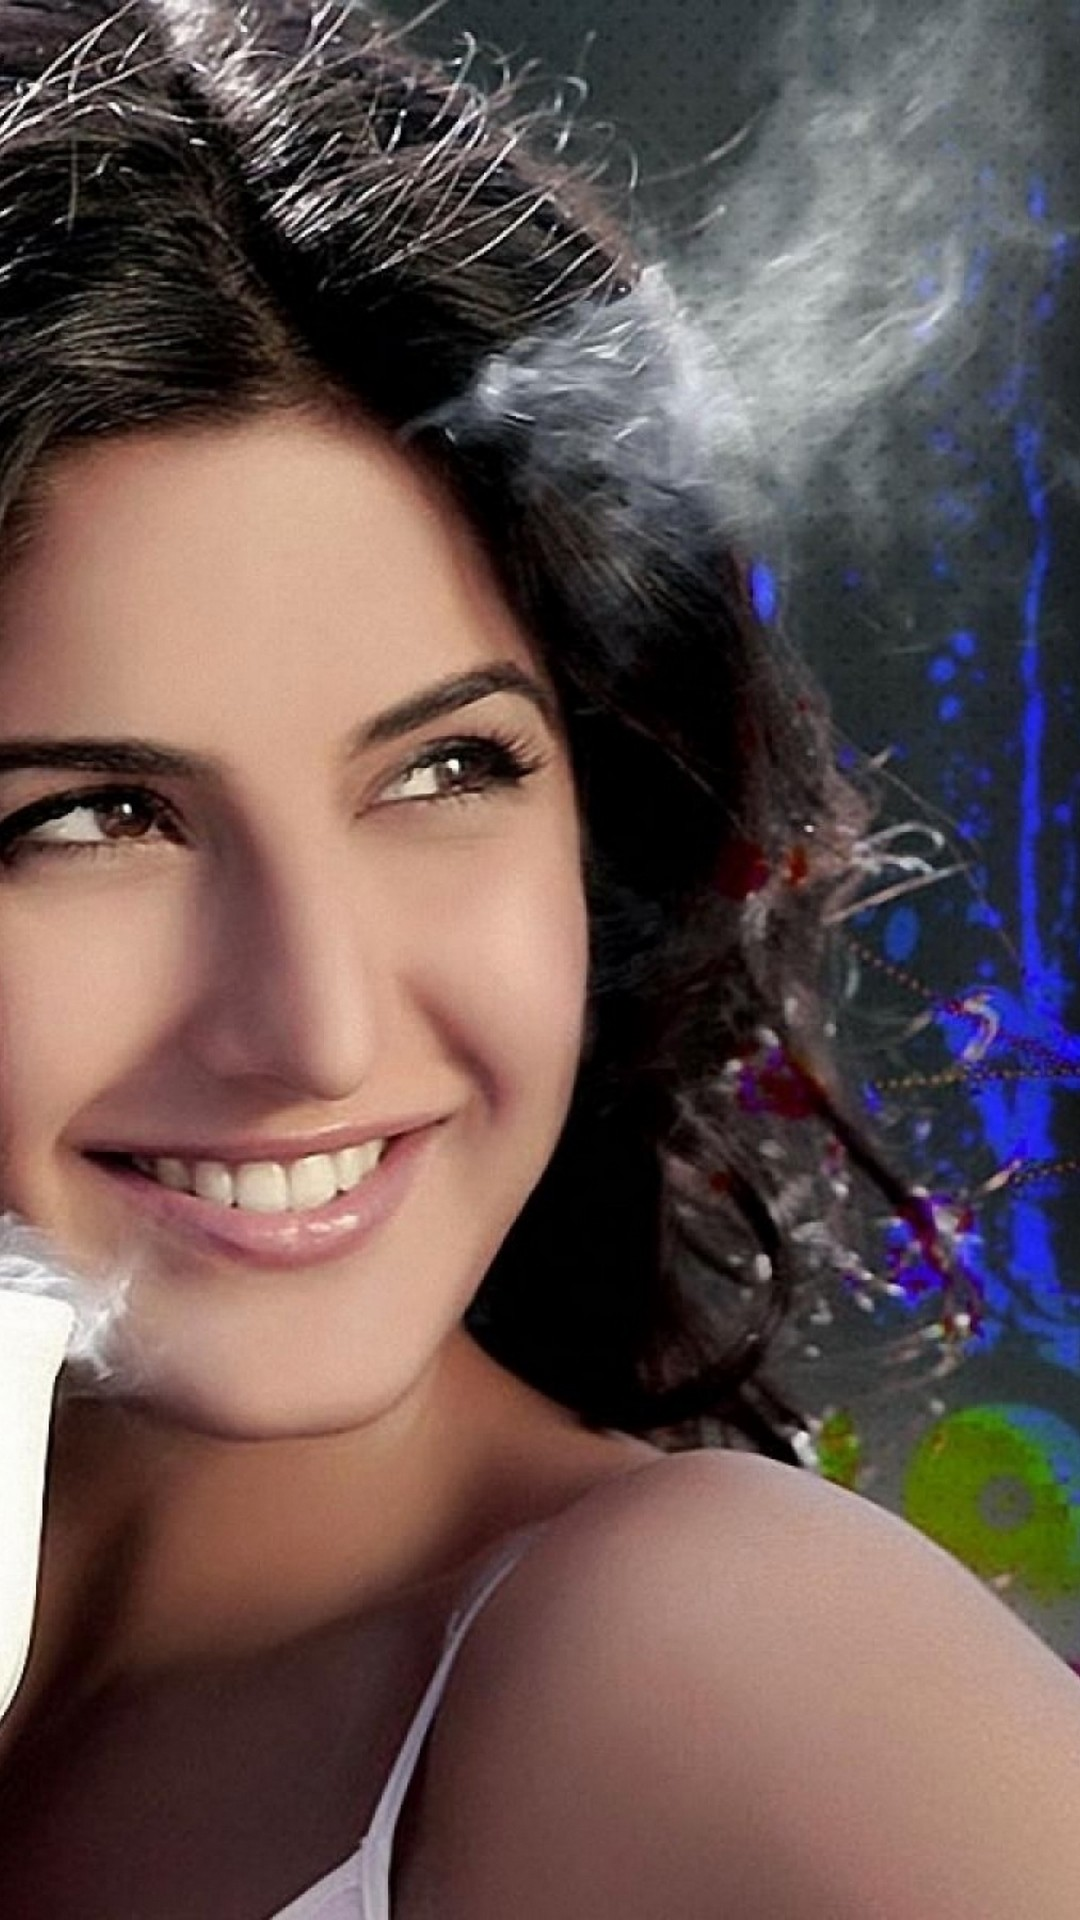 Bollywood Wallpapers With Quotes Wallpaper Katrina Kaif 5k Photo Bollywood Celebrities